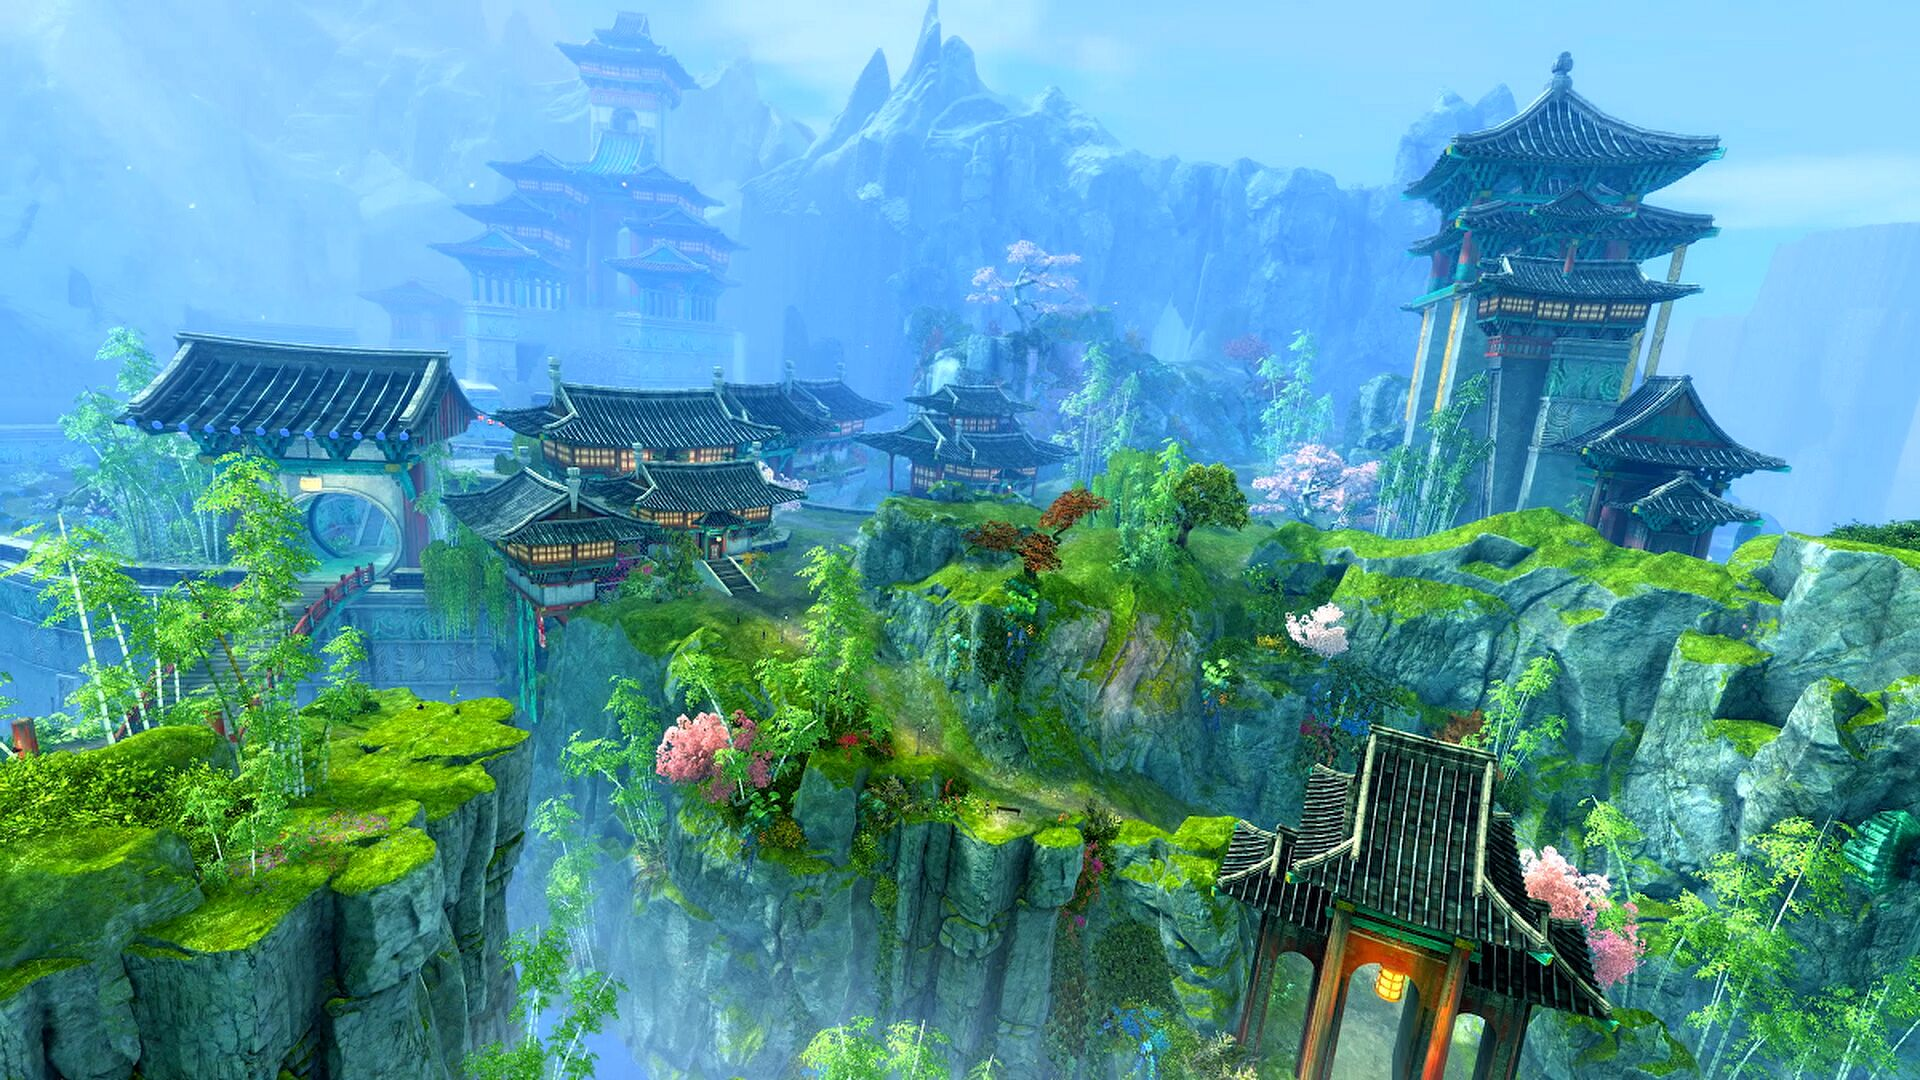 Guild Wars 2: End of Dragons expansion delayed to 2022